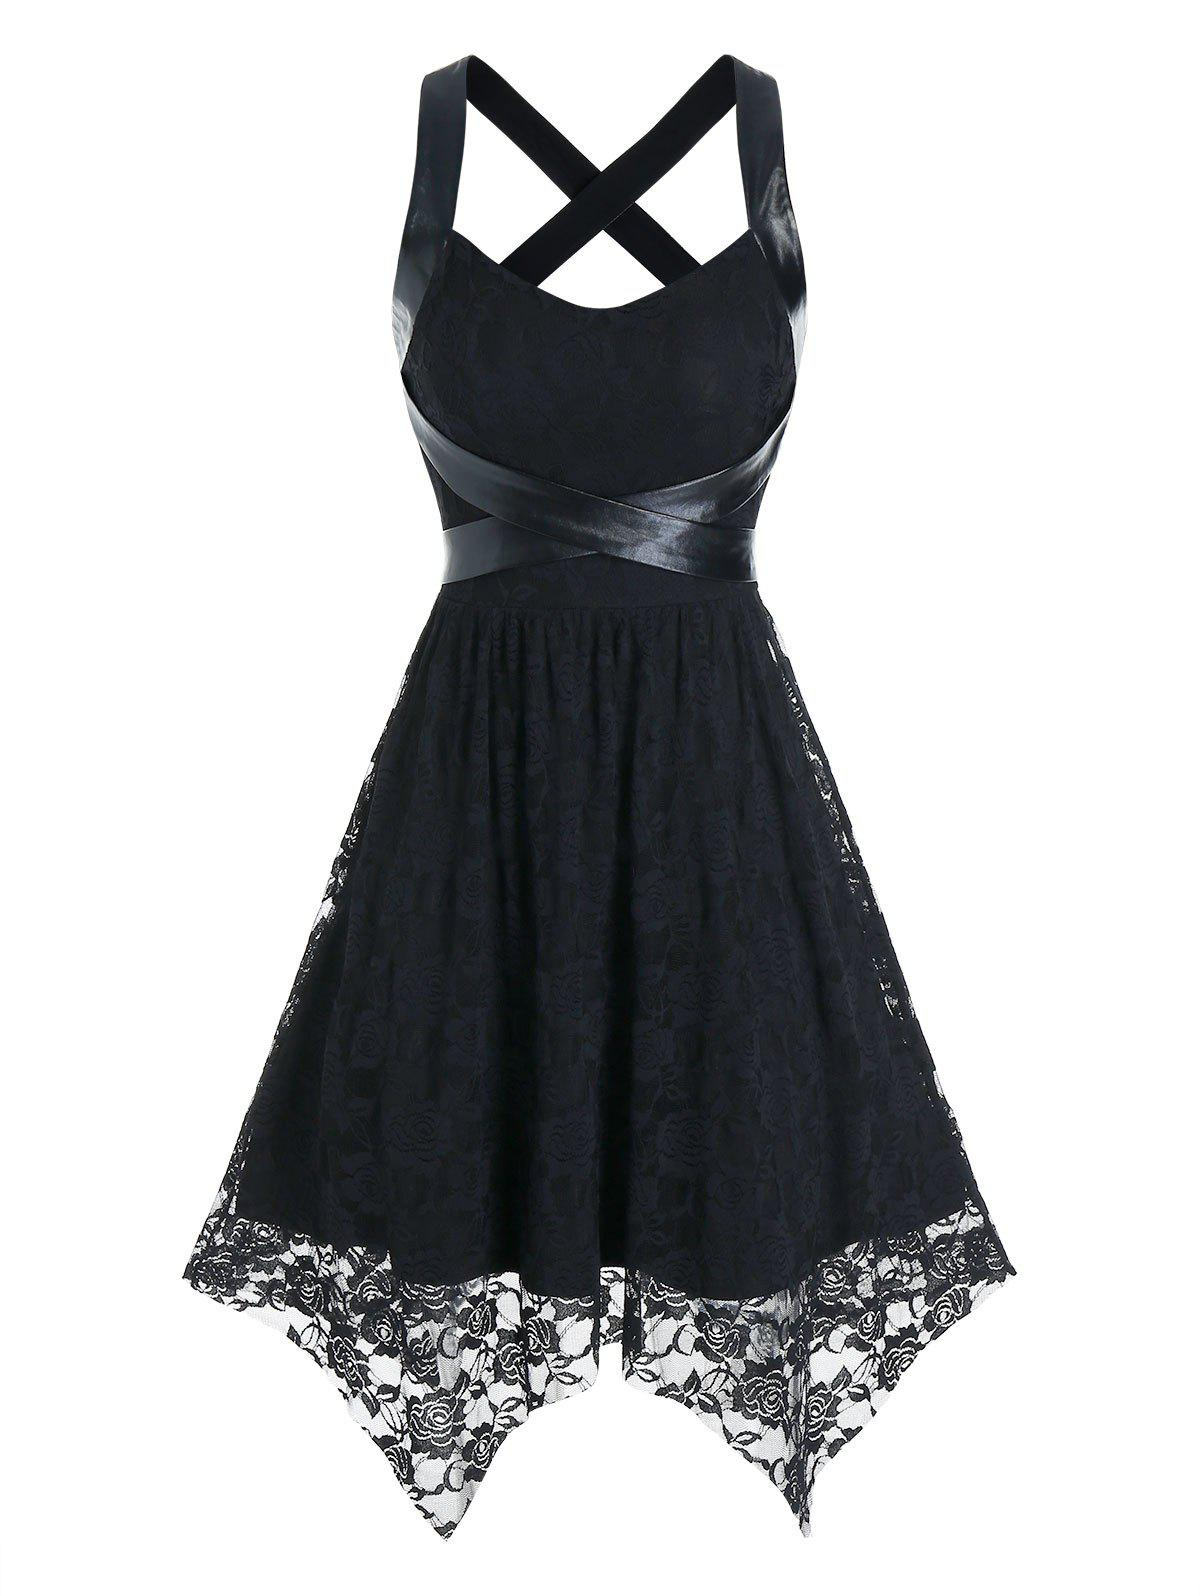 Sleeveless Flower Lace Handkerchief Dress - BLACK M